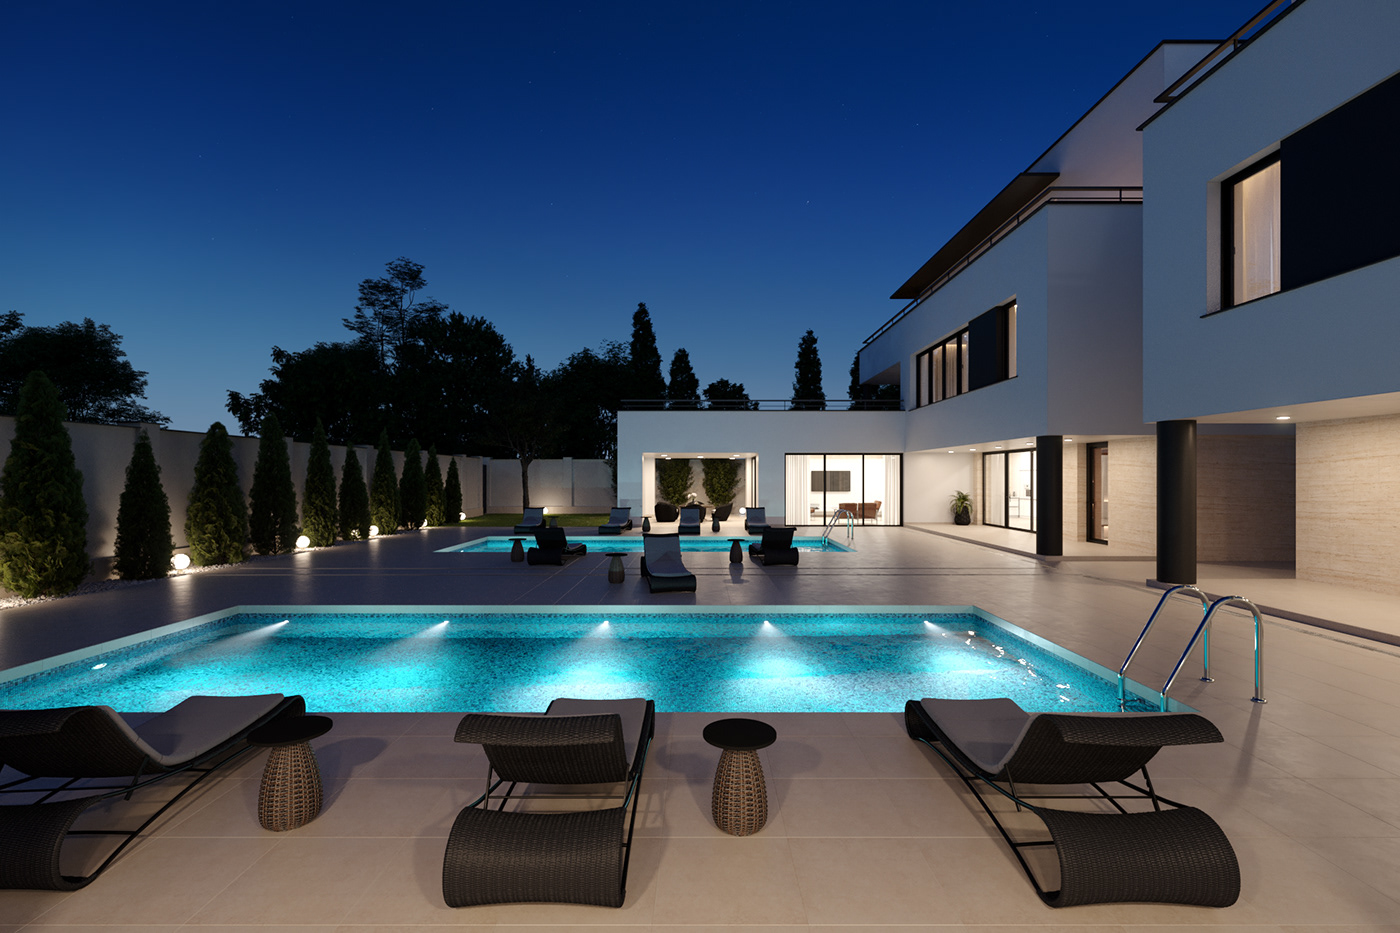 wh residence on behance